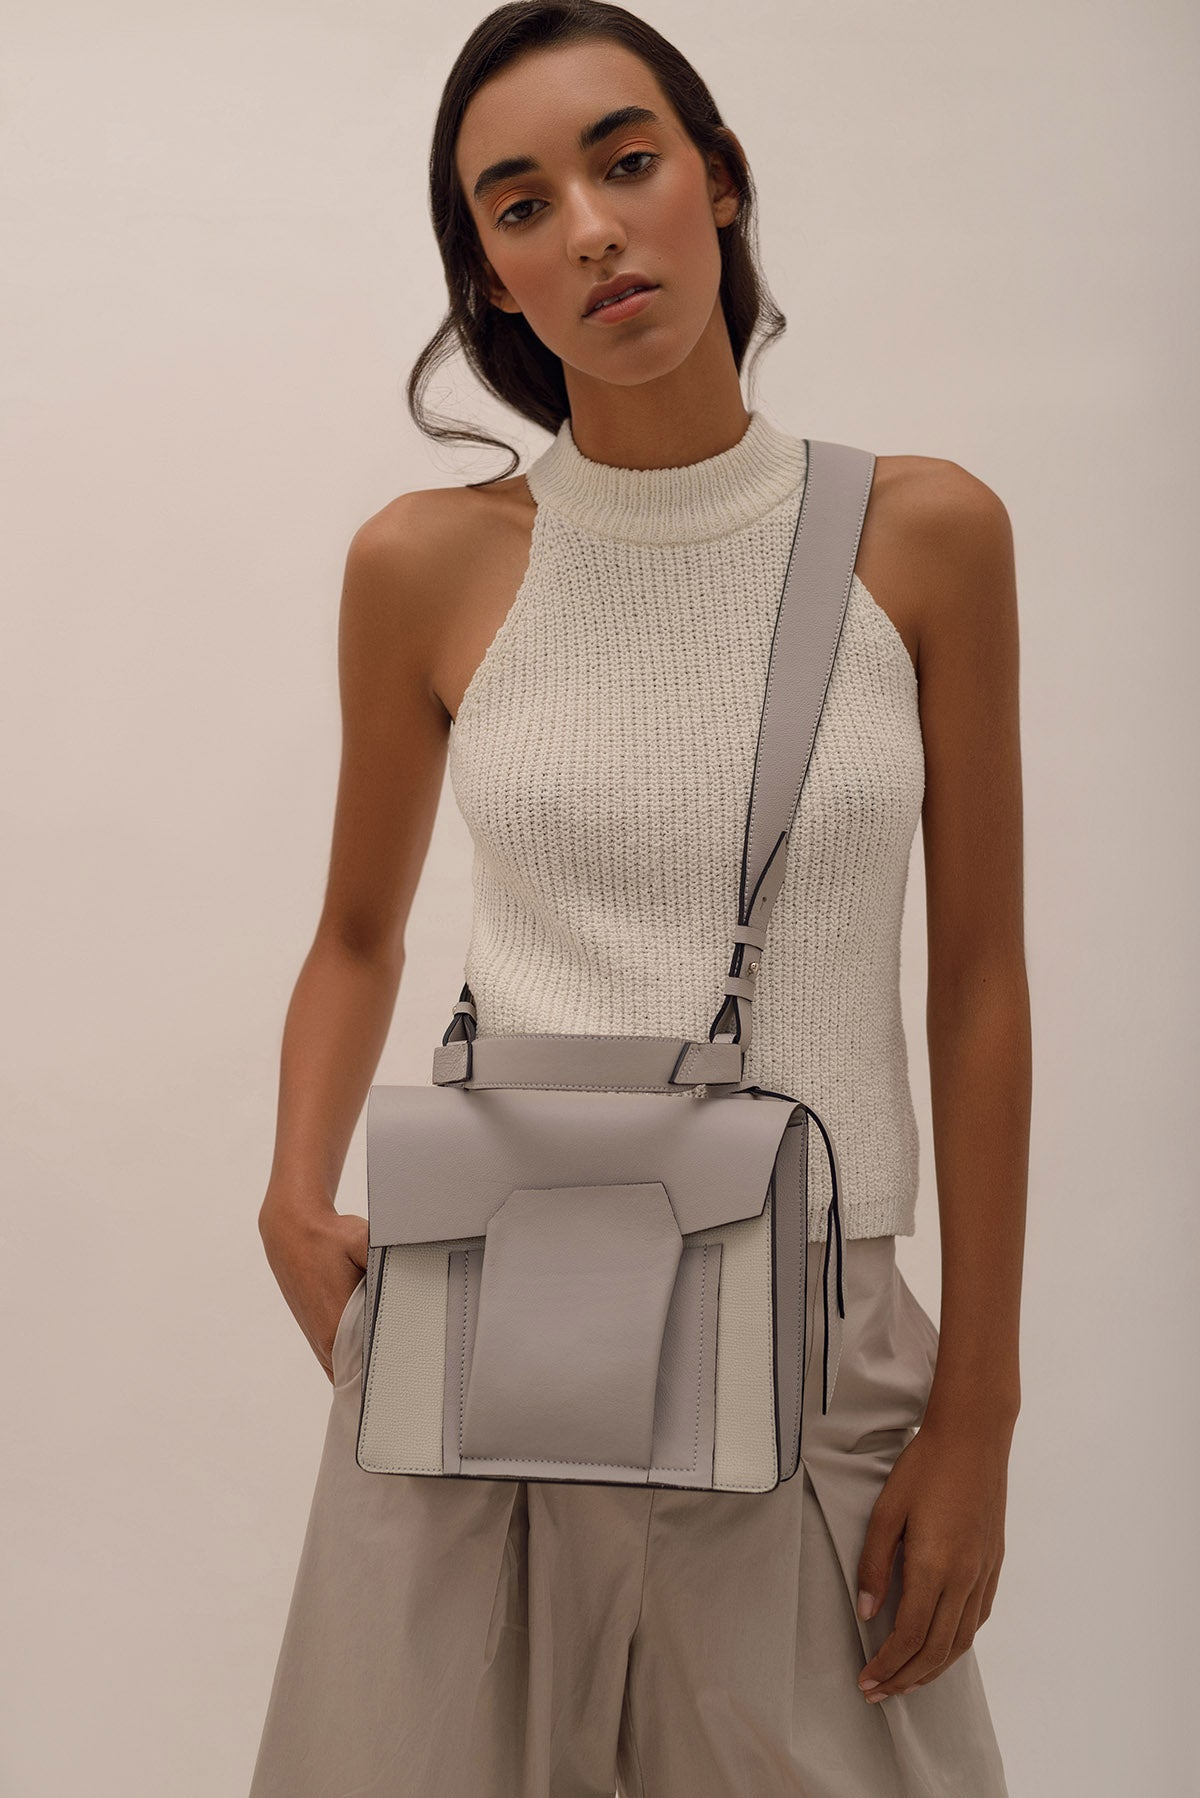 Shift Bag - Ivory Texture